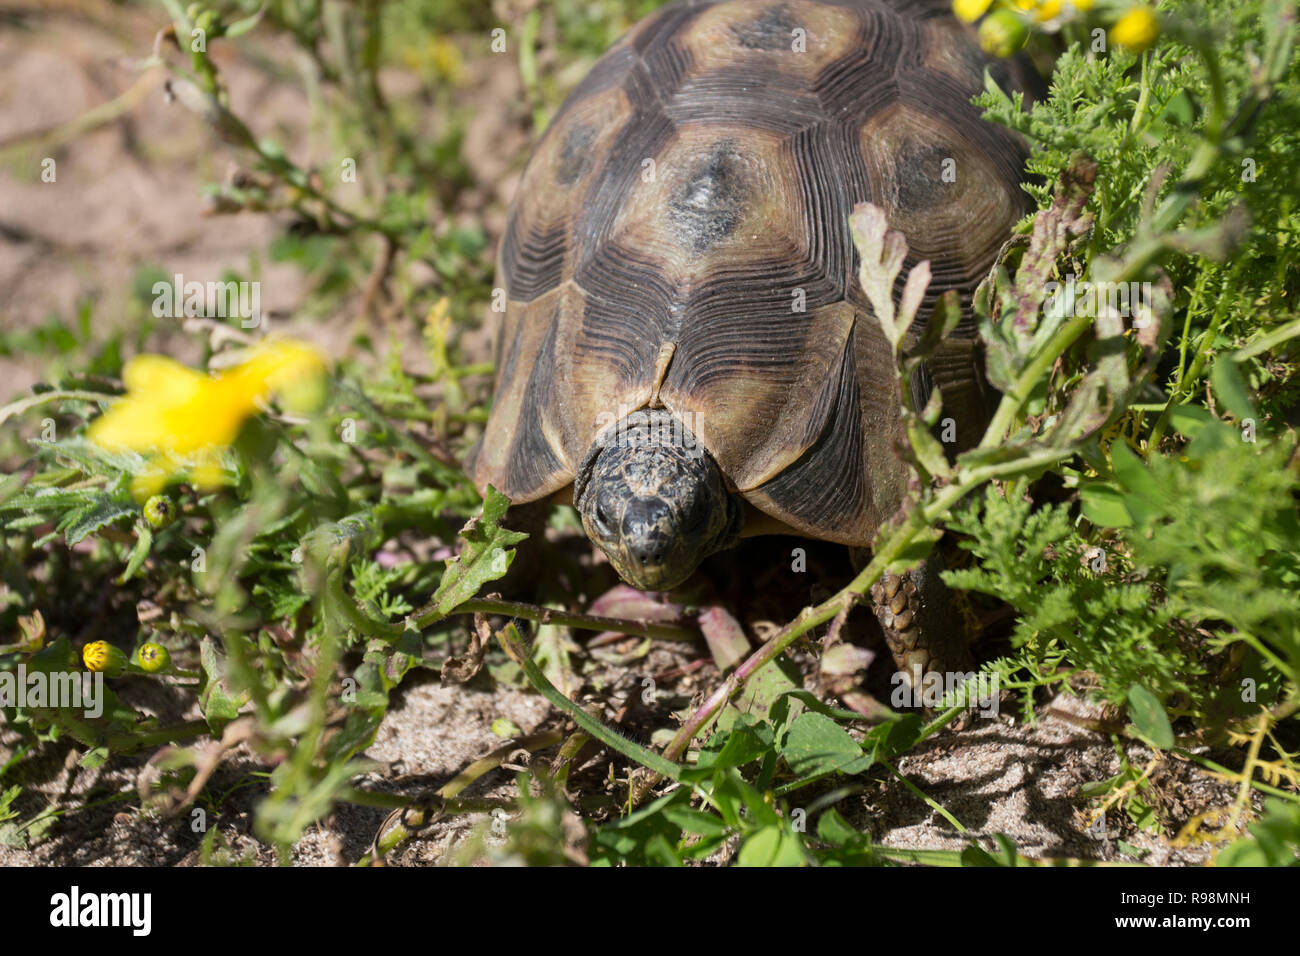 A Angulated tortoise in the West Coast National Park South Africa - Stock Image